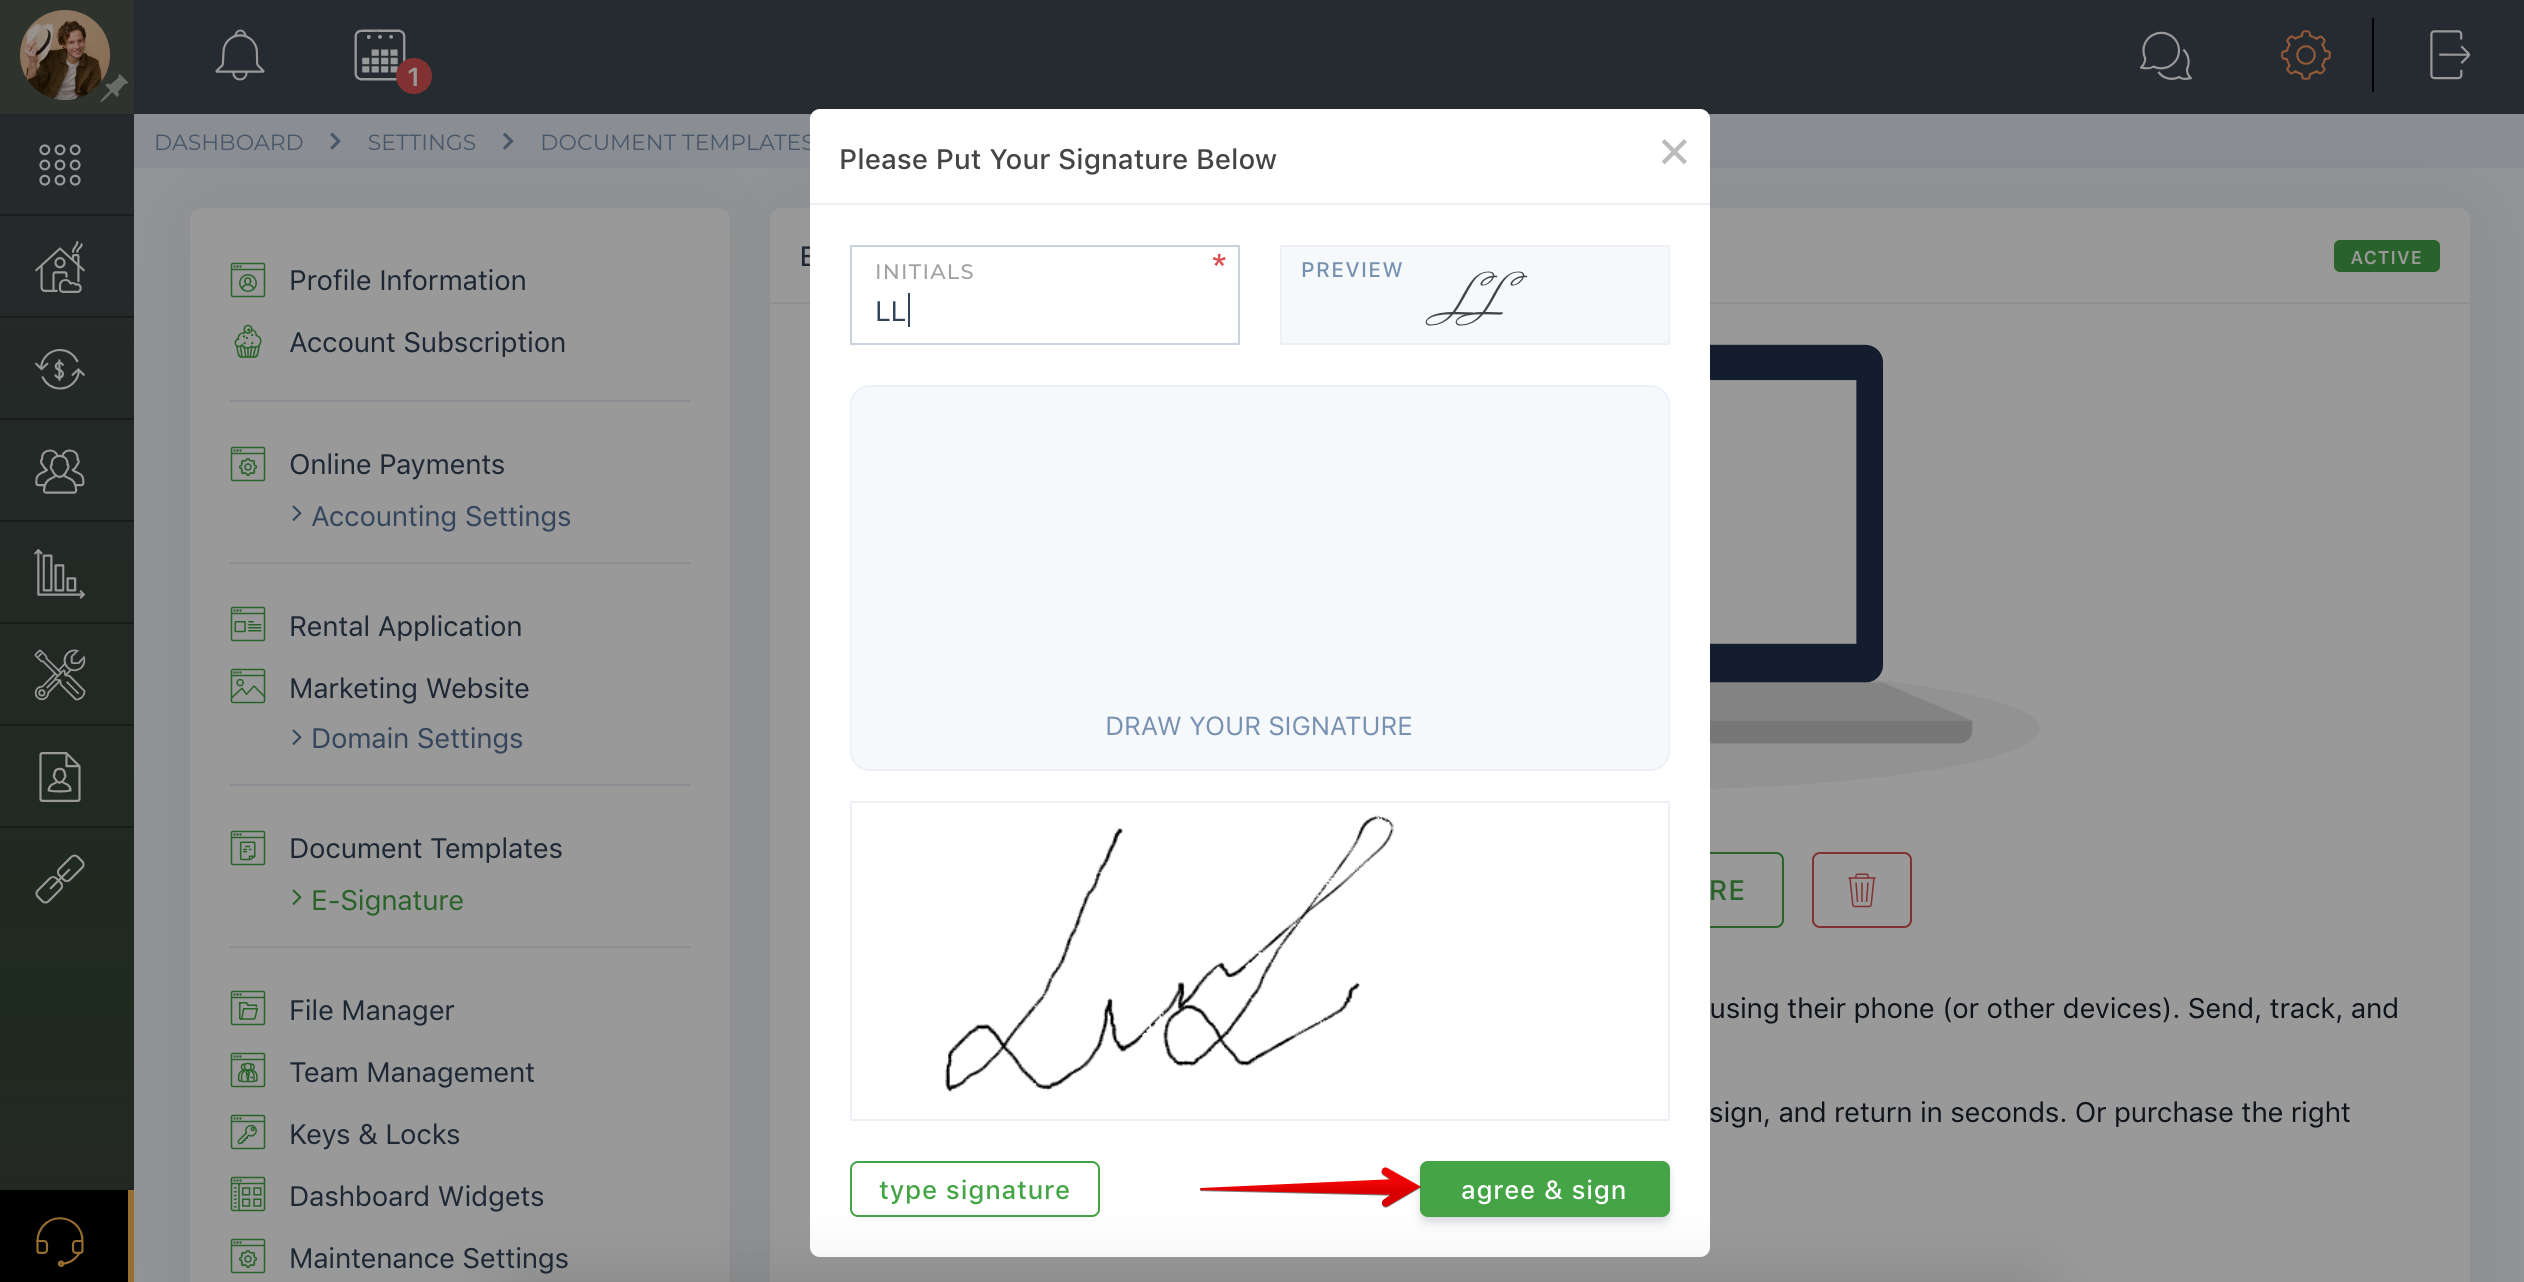 How to update electronic signature?